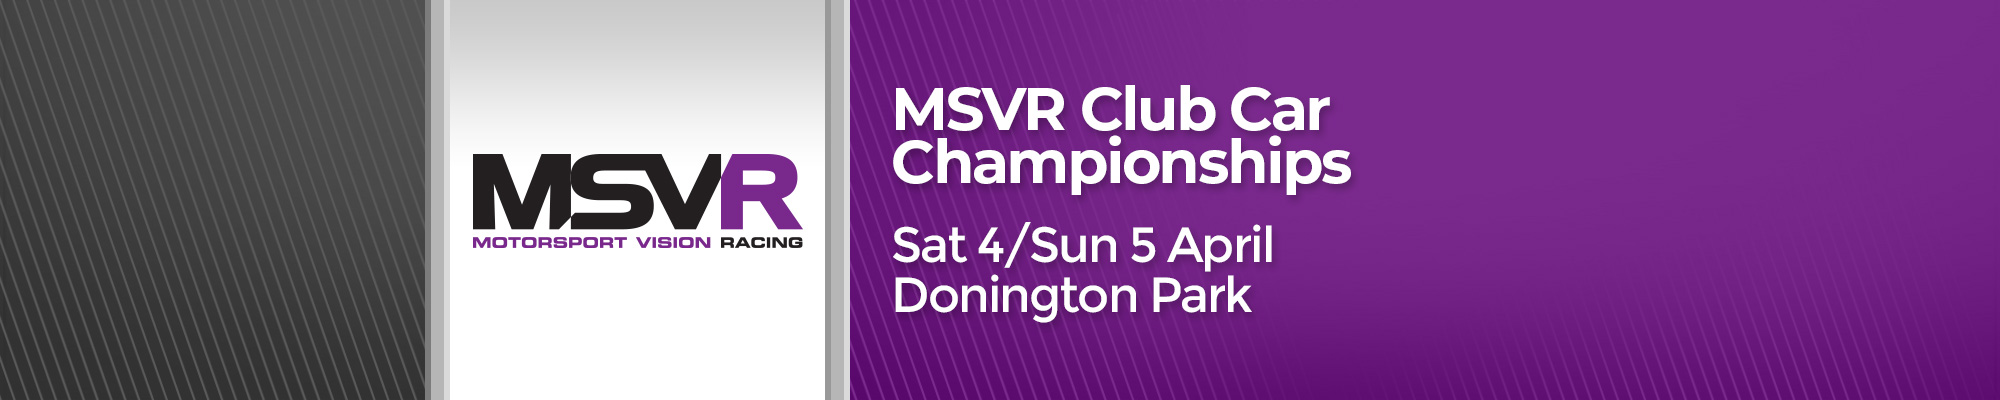 MSVR Club Car Championships feat EnduroKA 5hr